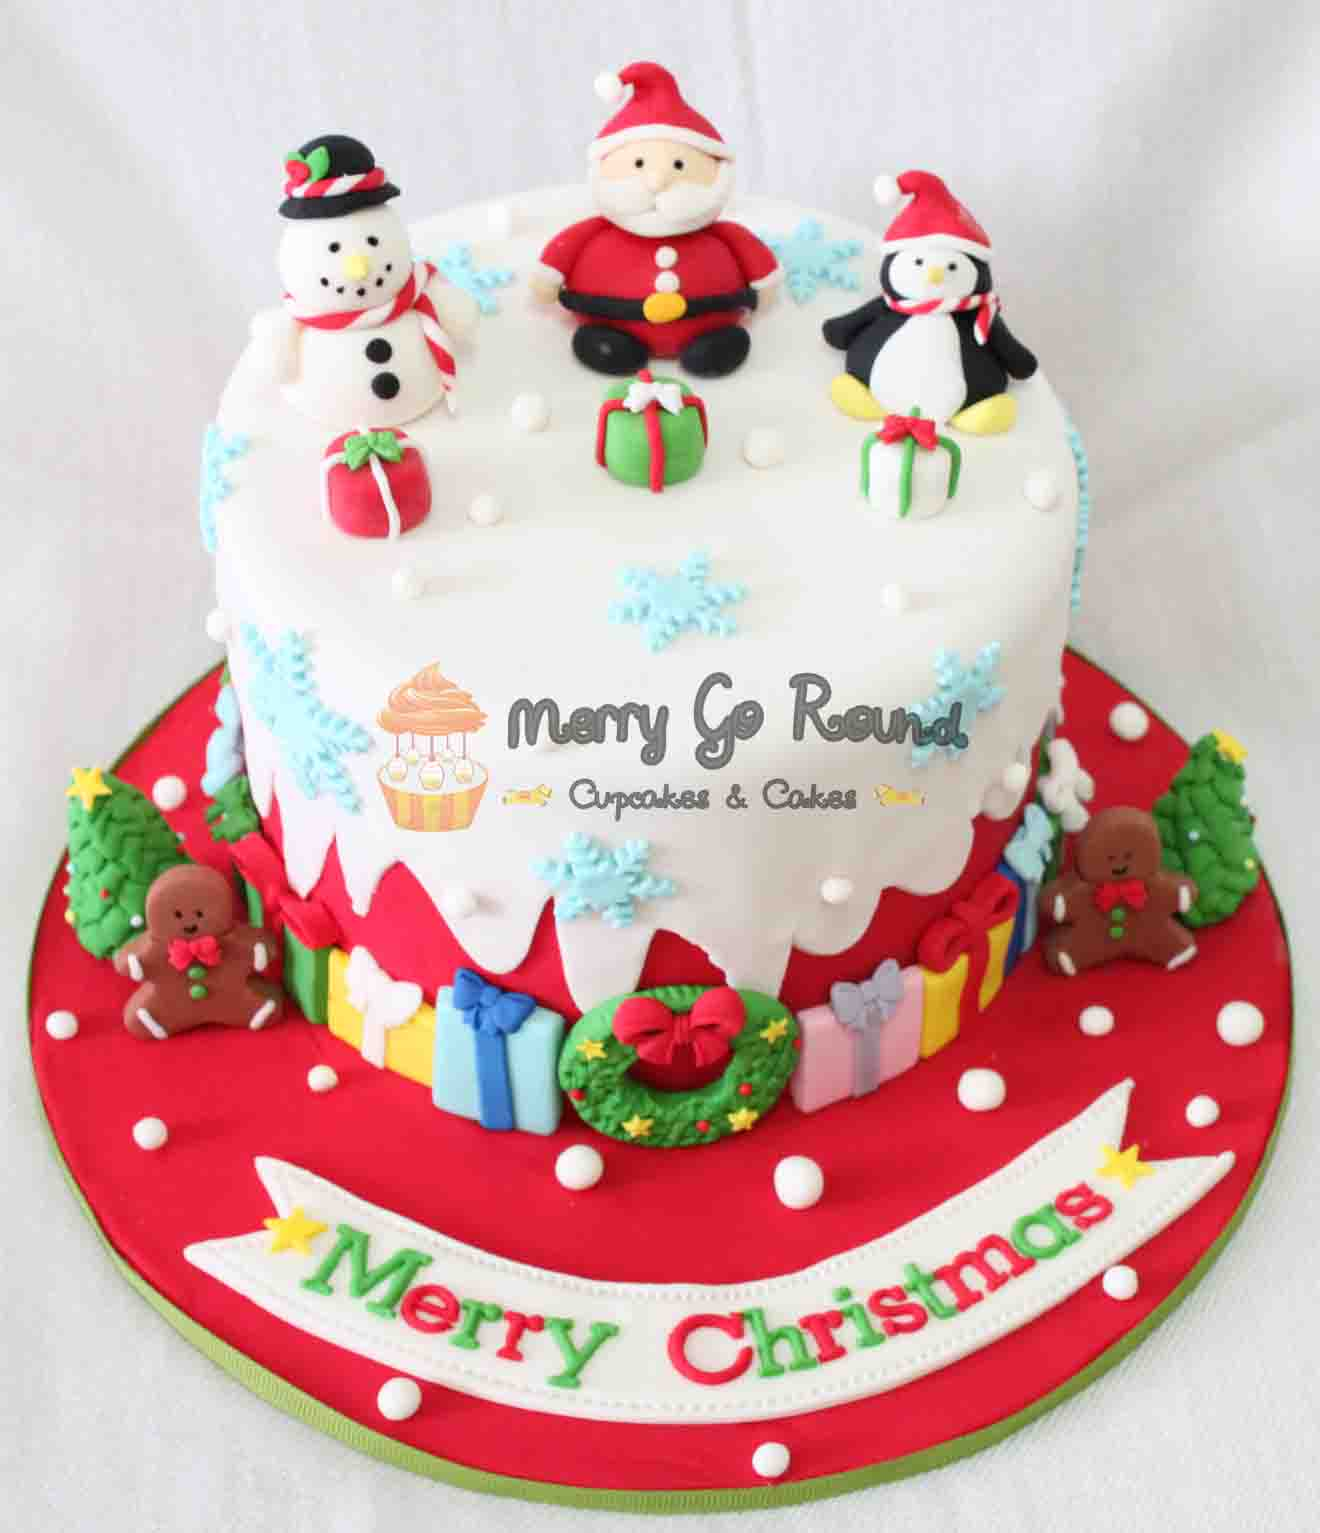 Christmas Cake Ideas Santa : PicturesPool: Christmas Cakes Pictures Christmas Cakes ...